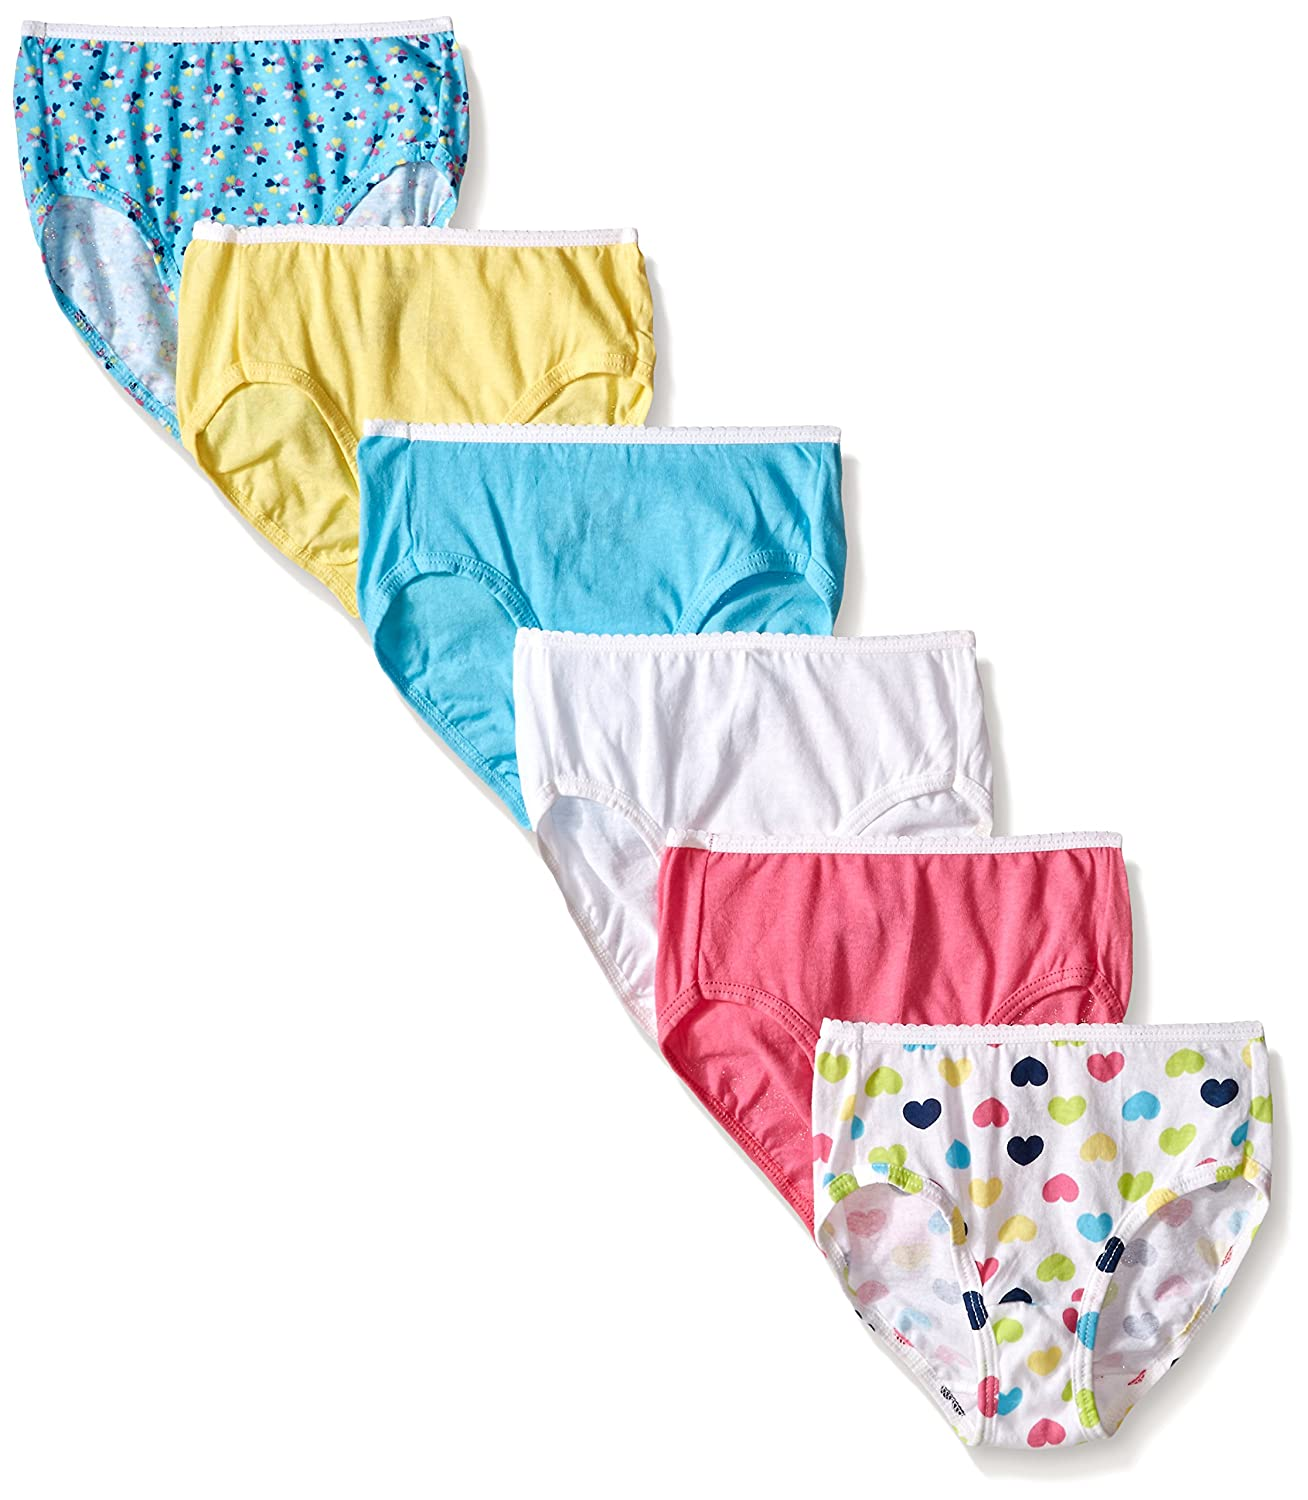 Hanes Girls Toddler Girls Toddler 6-Pack Brief Hanes Girls 7-16 Underwear TP30AS